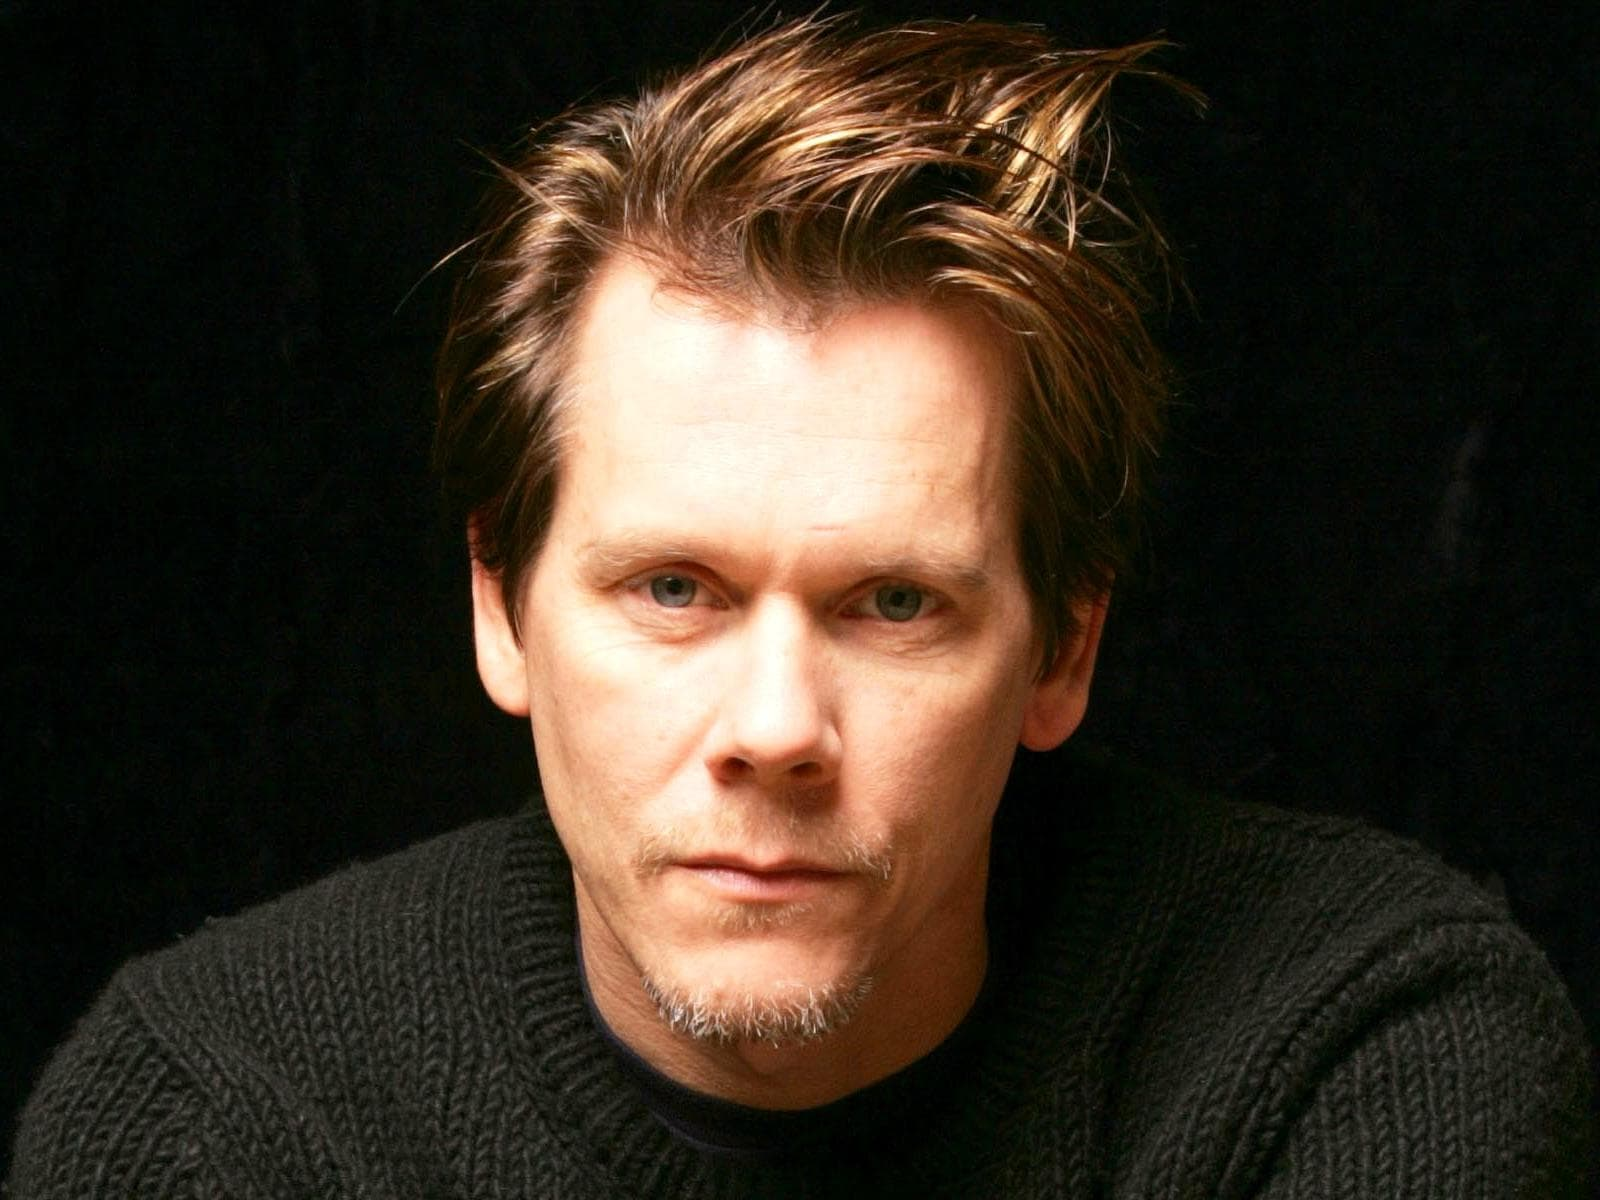 Kevin Bacon HD Wallpapers 7wallpapersnet 1600x1200